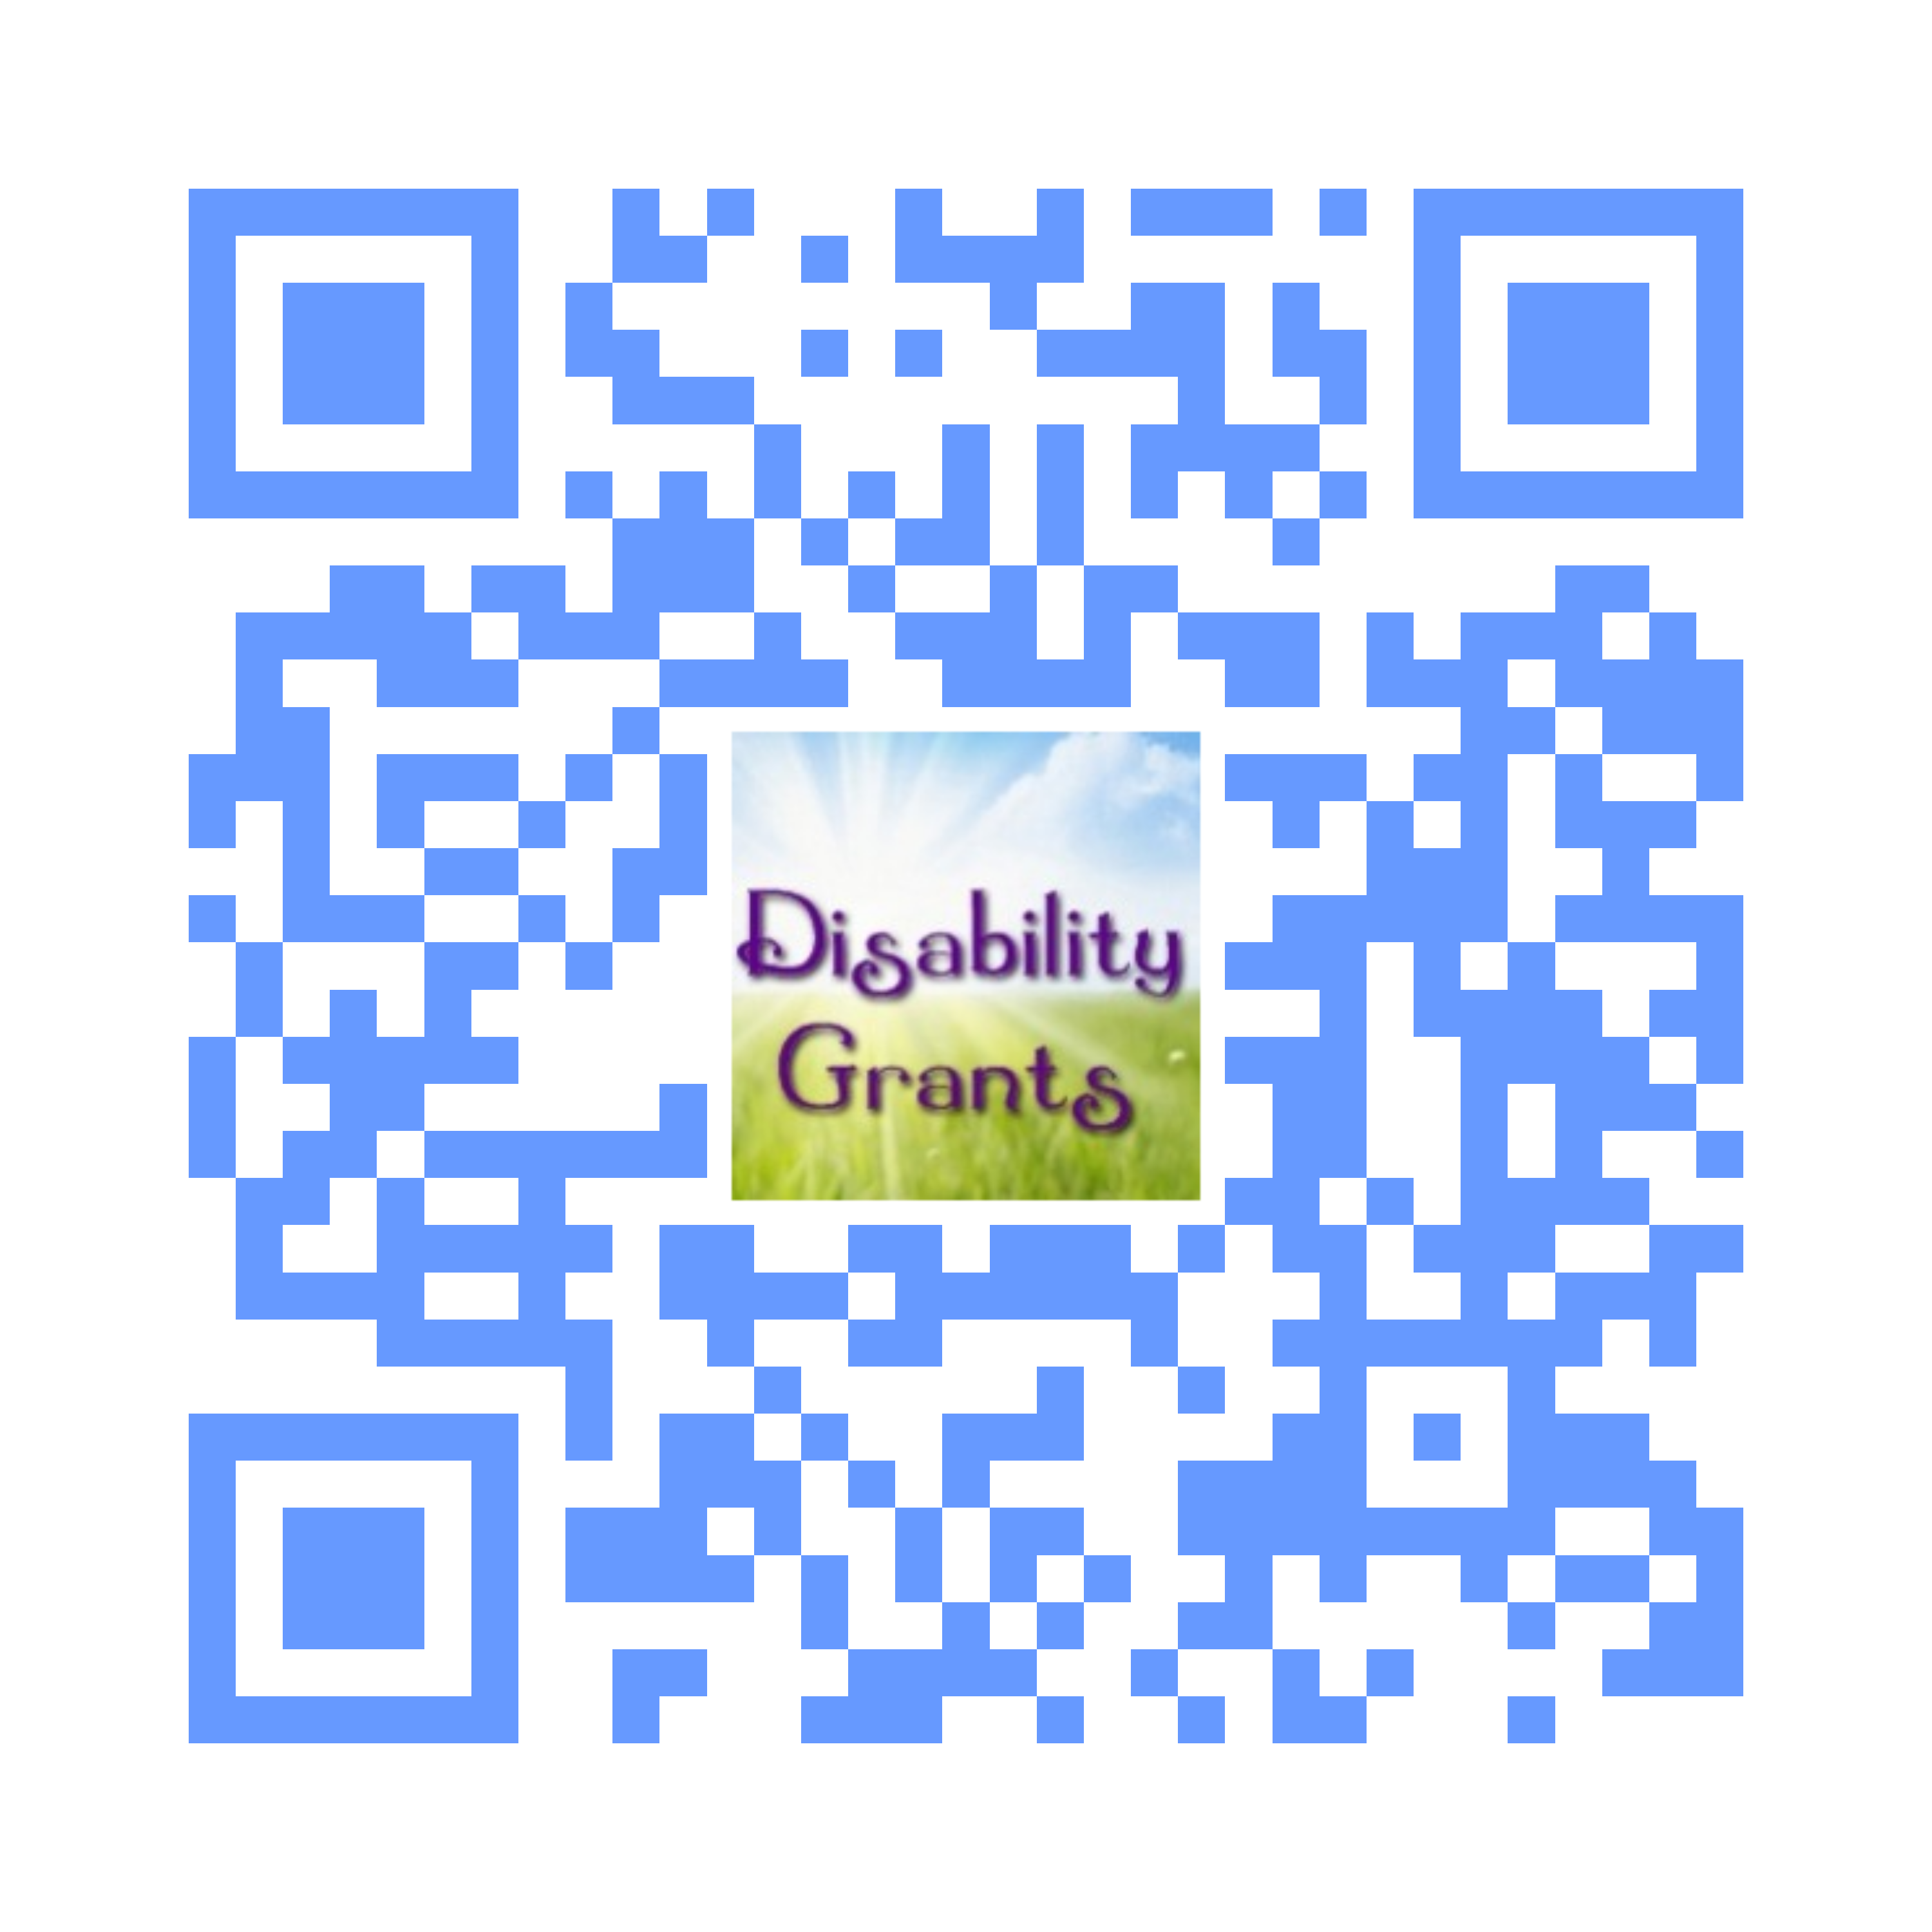 QR code linking to the Disability Grants website